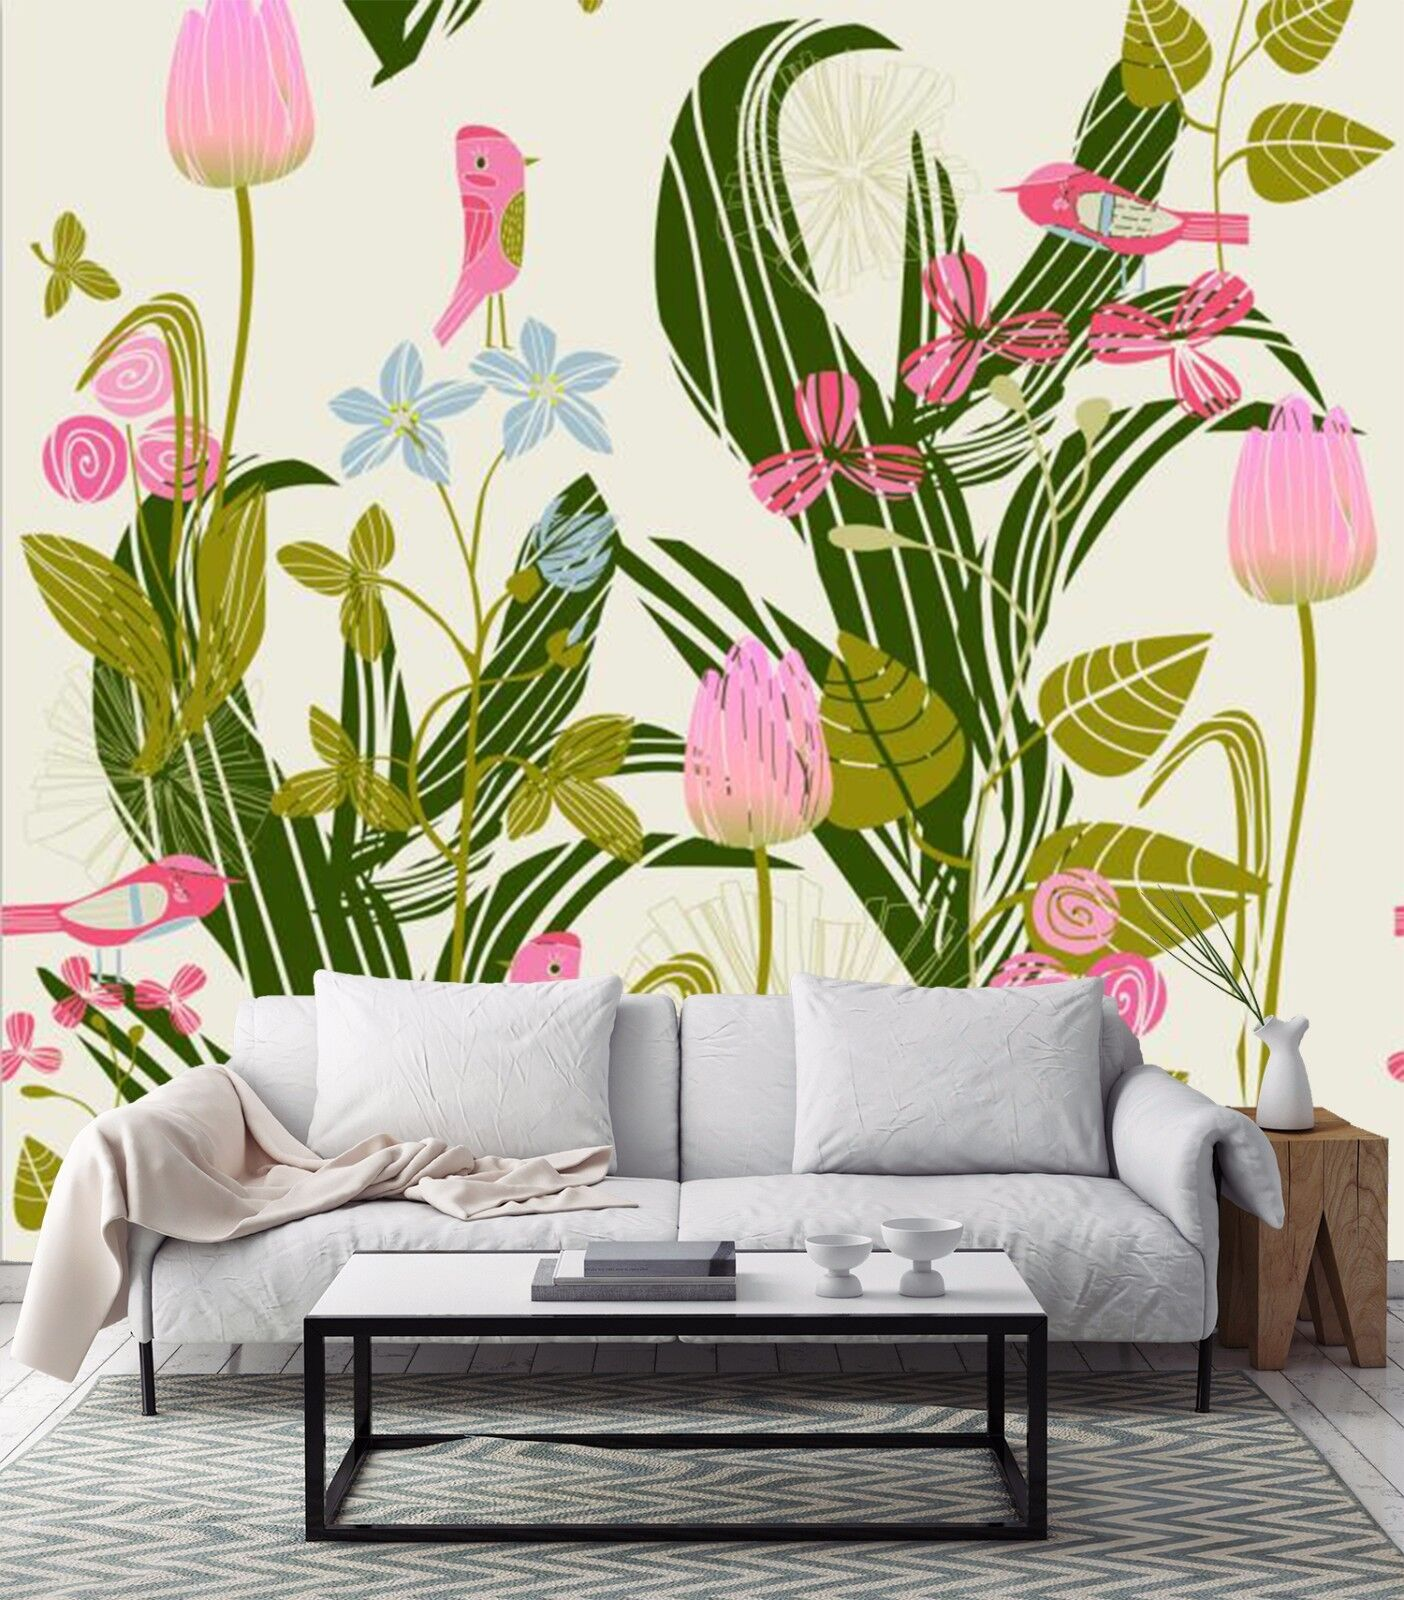 3D Leaves Flowers 973 Wallpaper Mural Paper Wall Print Wallpaper Murals UK